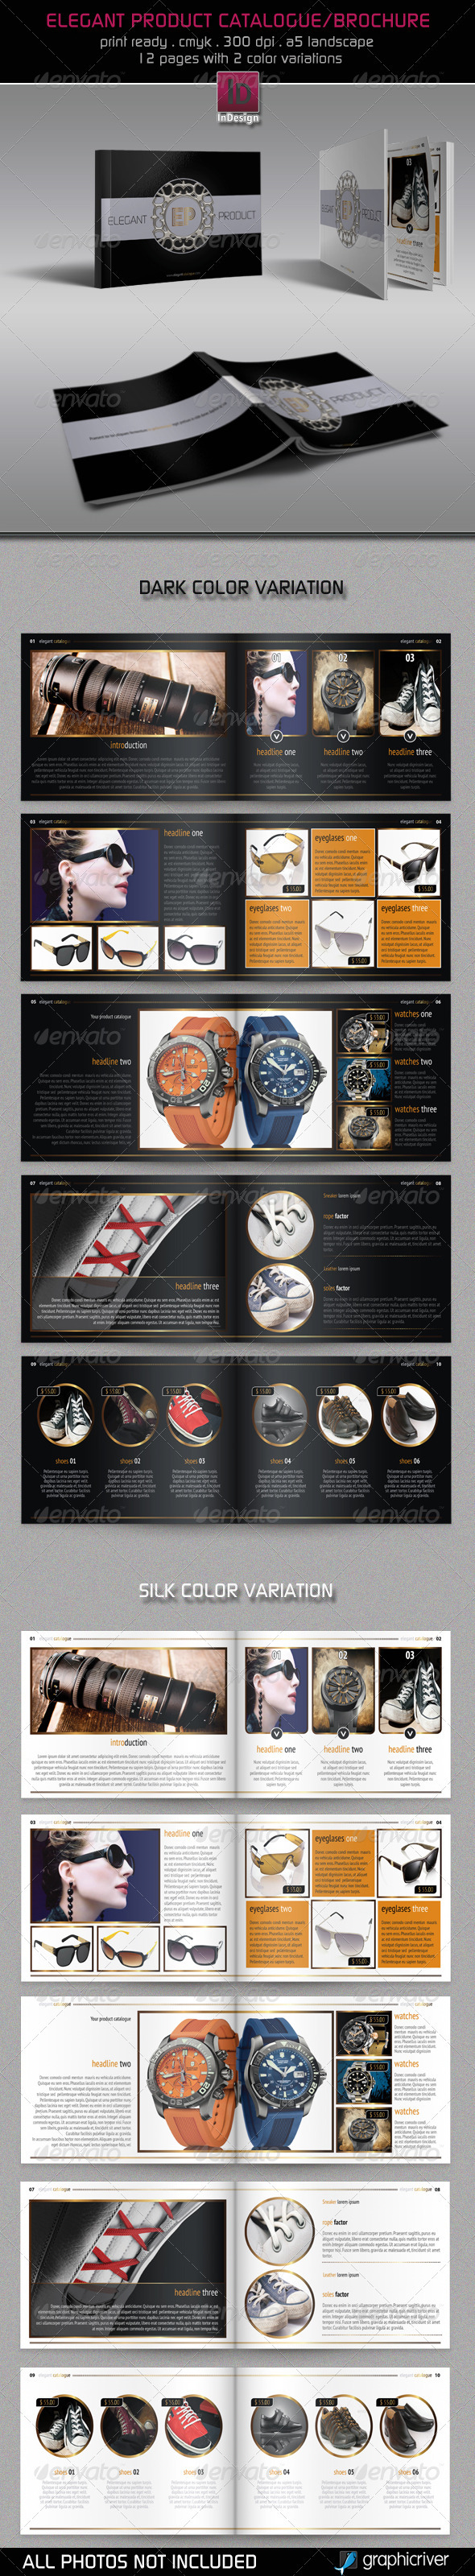 GraphicRiver Elegant Product Catalogue Brochure 2629975